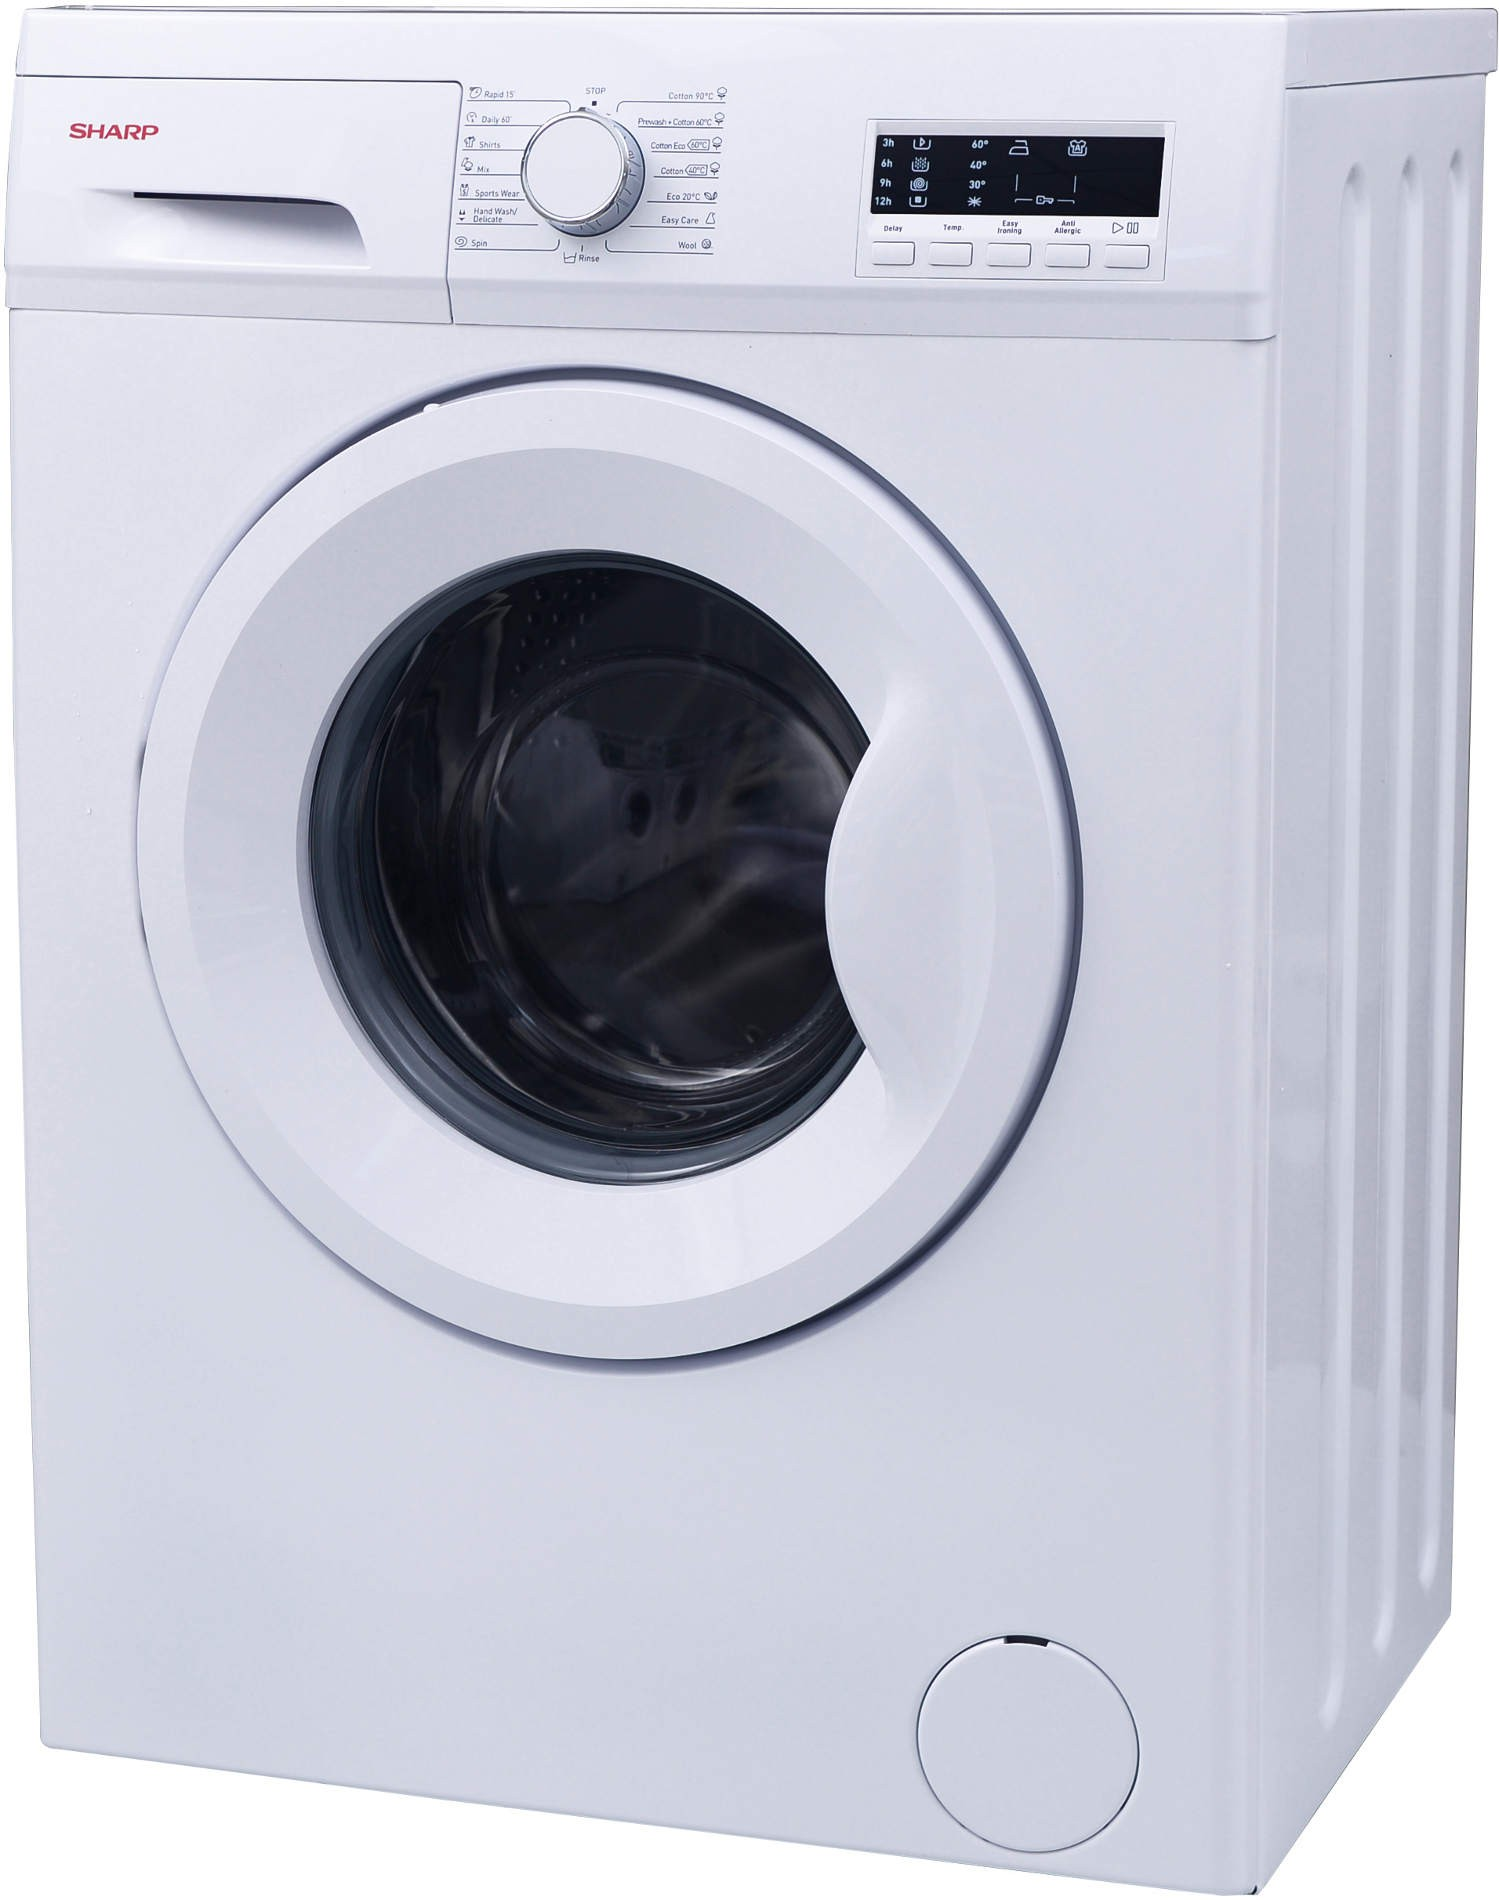 Comment choisir son lave linge for Comment nettoyer son lave linge